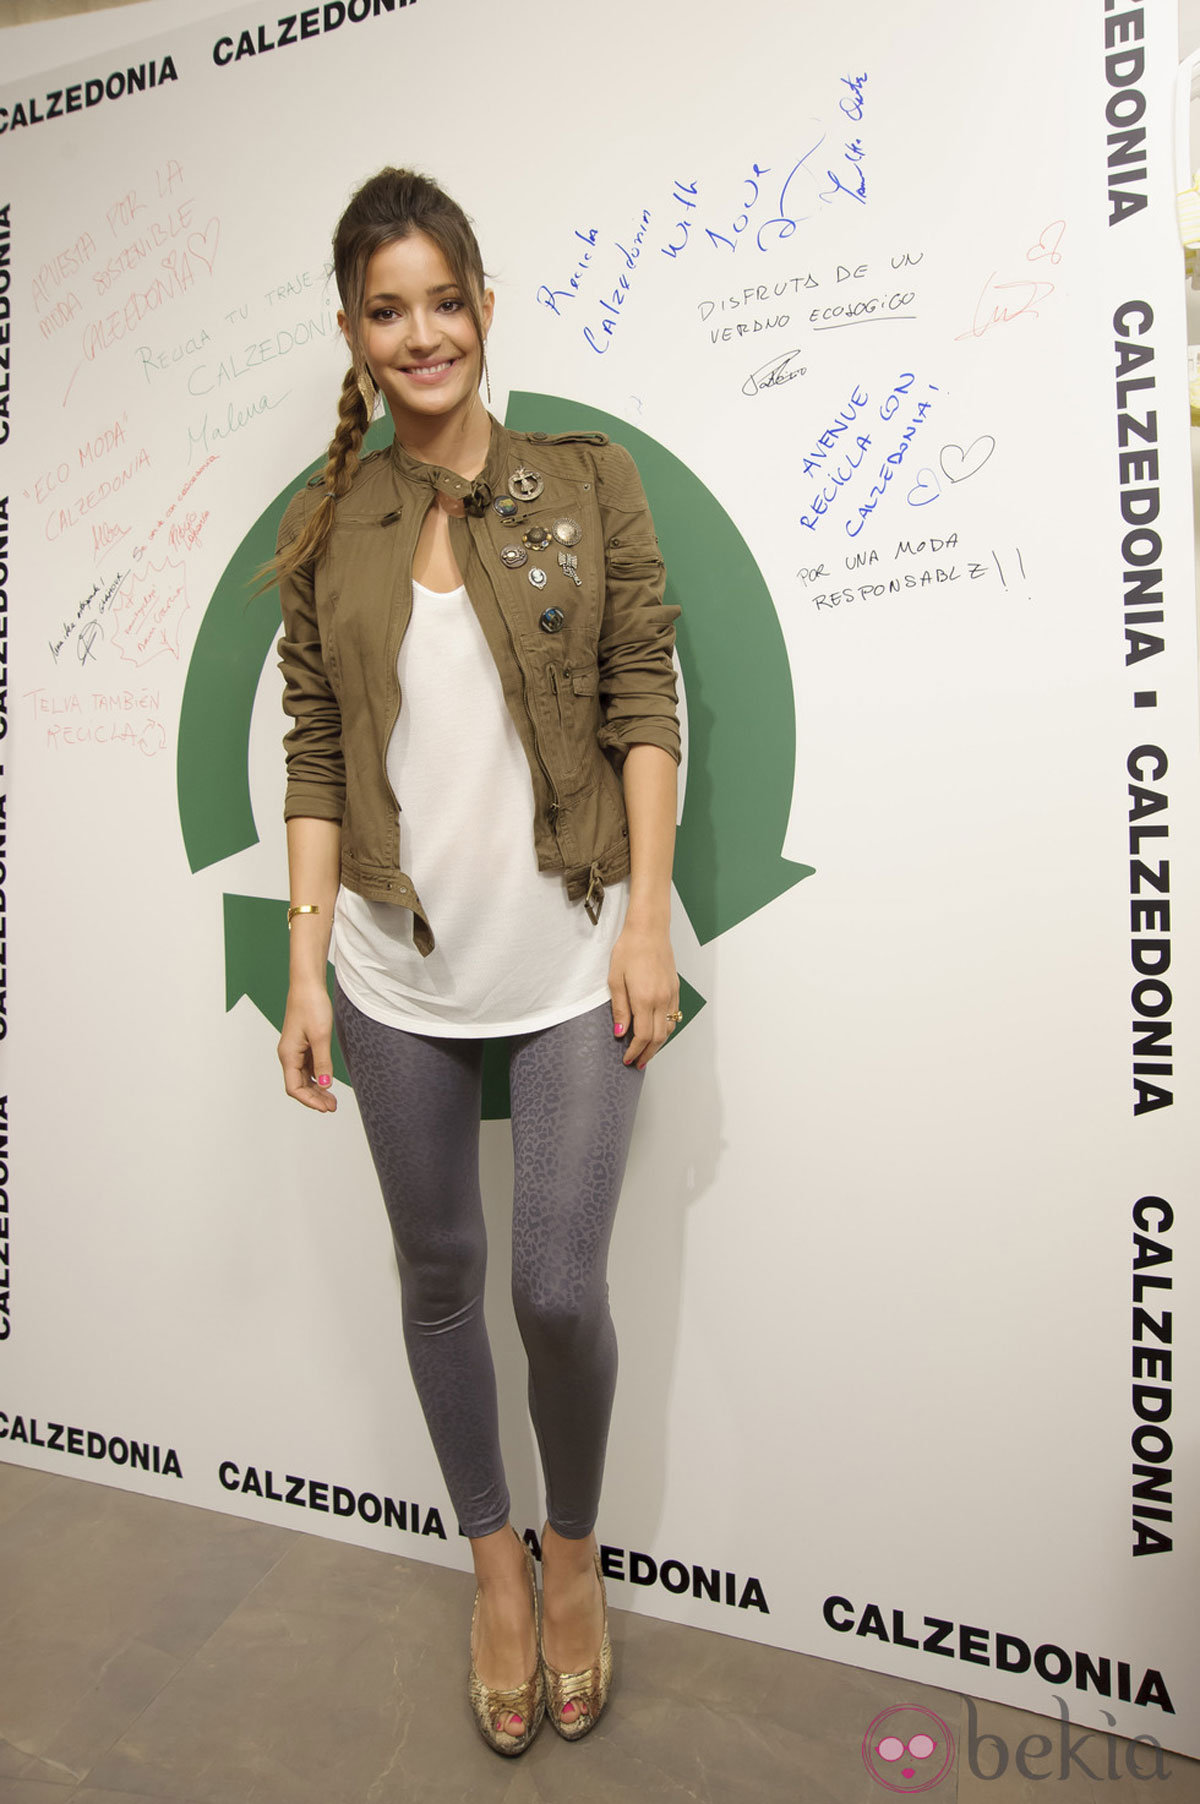 MALENA COSTA     Calzedonia Recycled Campaign-06 - Full SizeMalena Costa Recycle